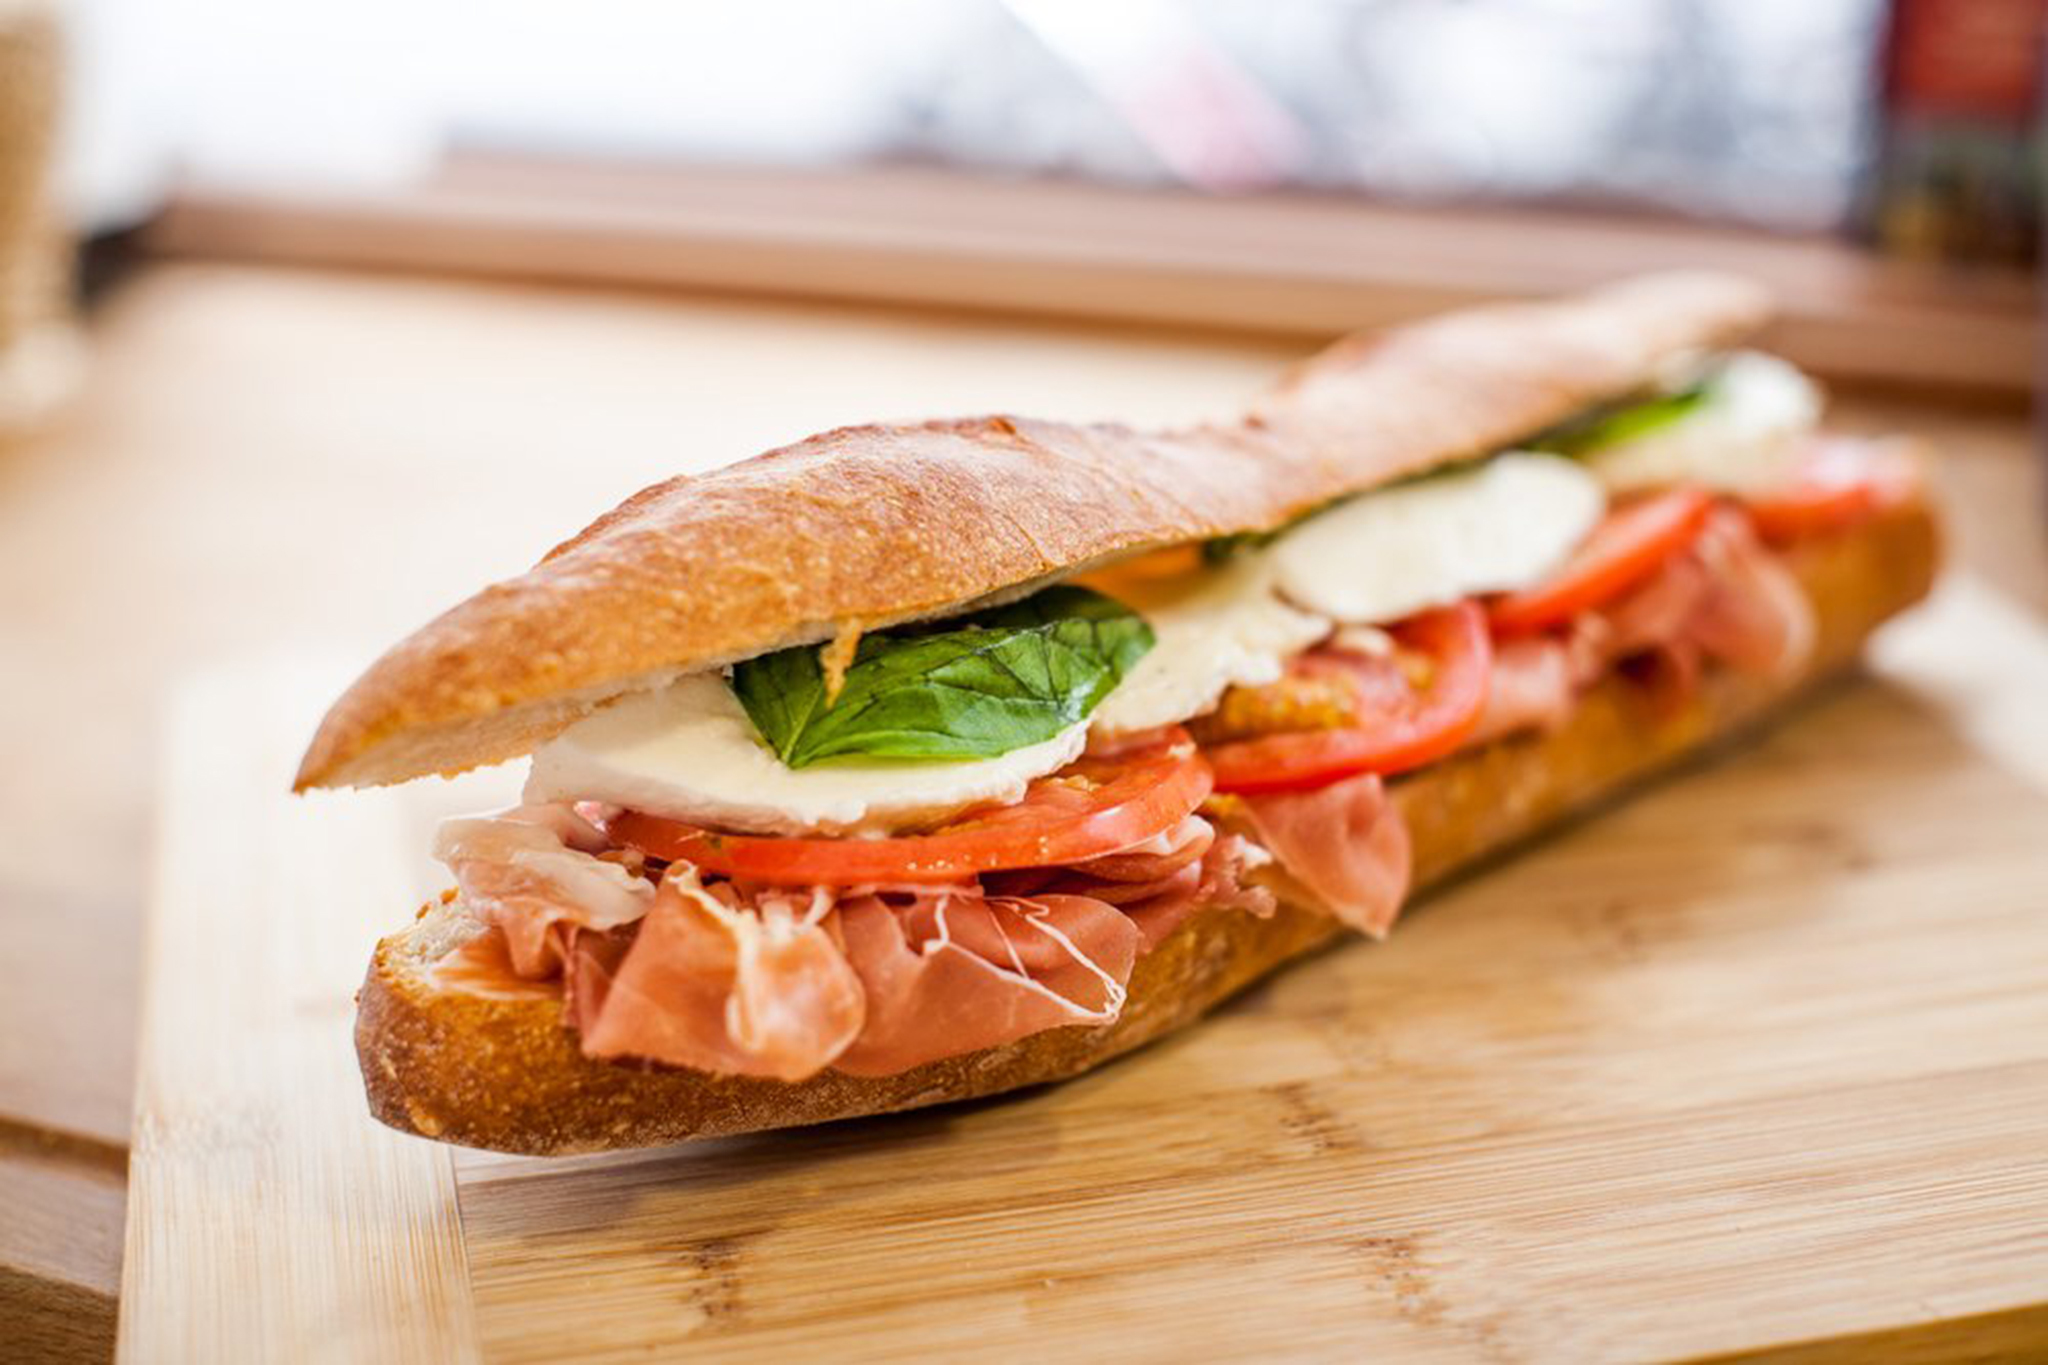 Check out the best Italian sandwich shops in NYC